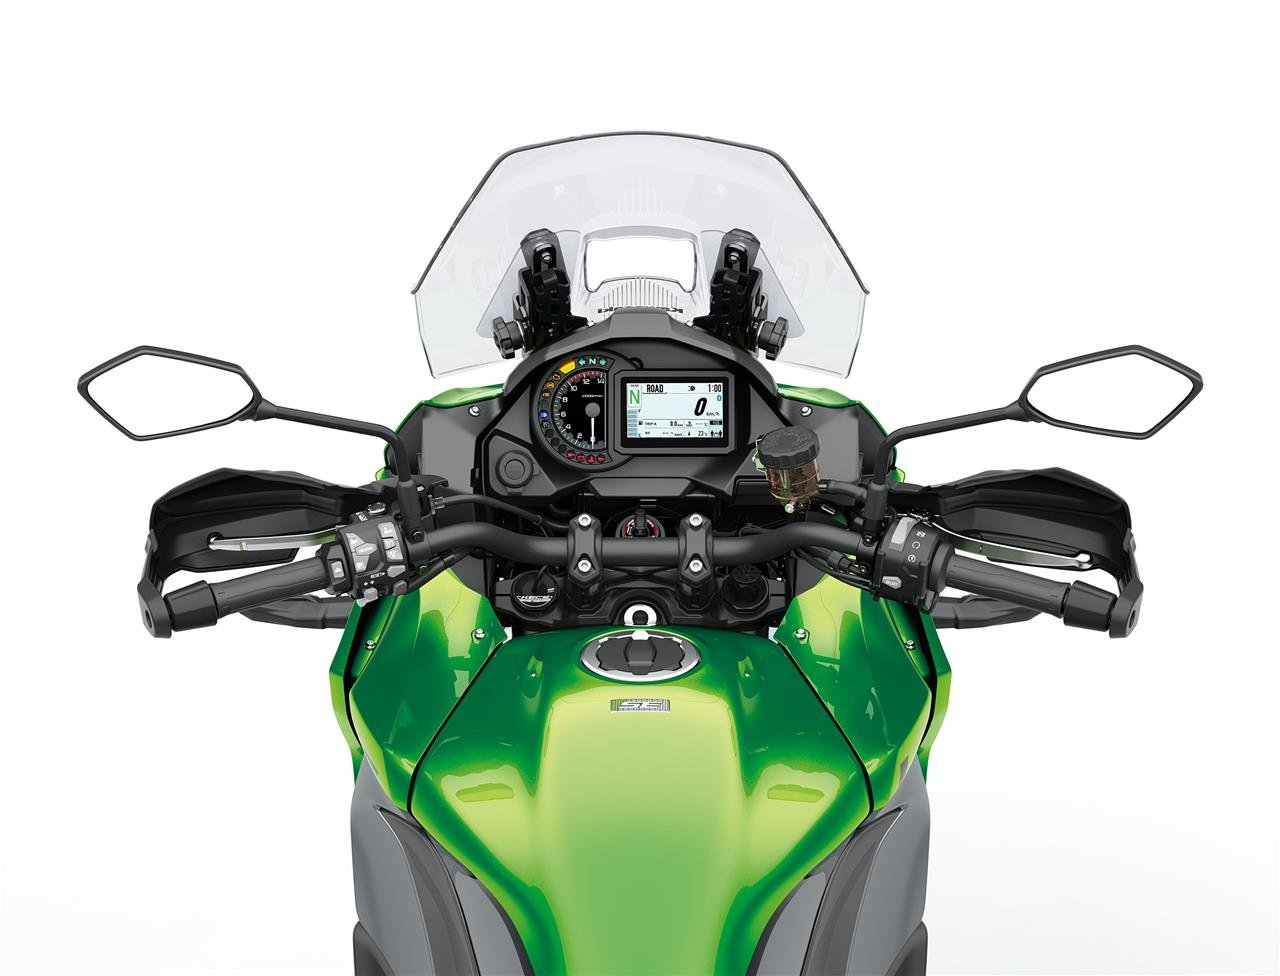 New 2020 Kawasaki Versys1000 SE GT*SAVE £1,800** For Sale (picture 6 of 6)